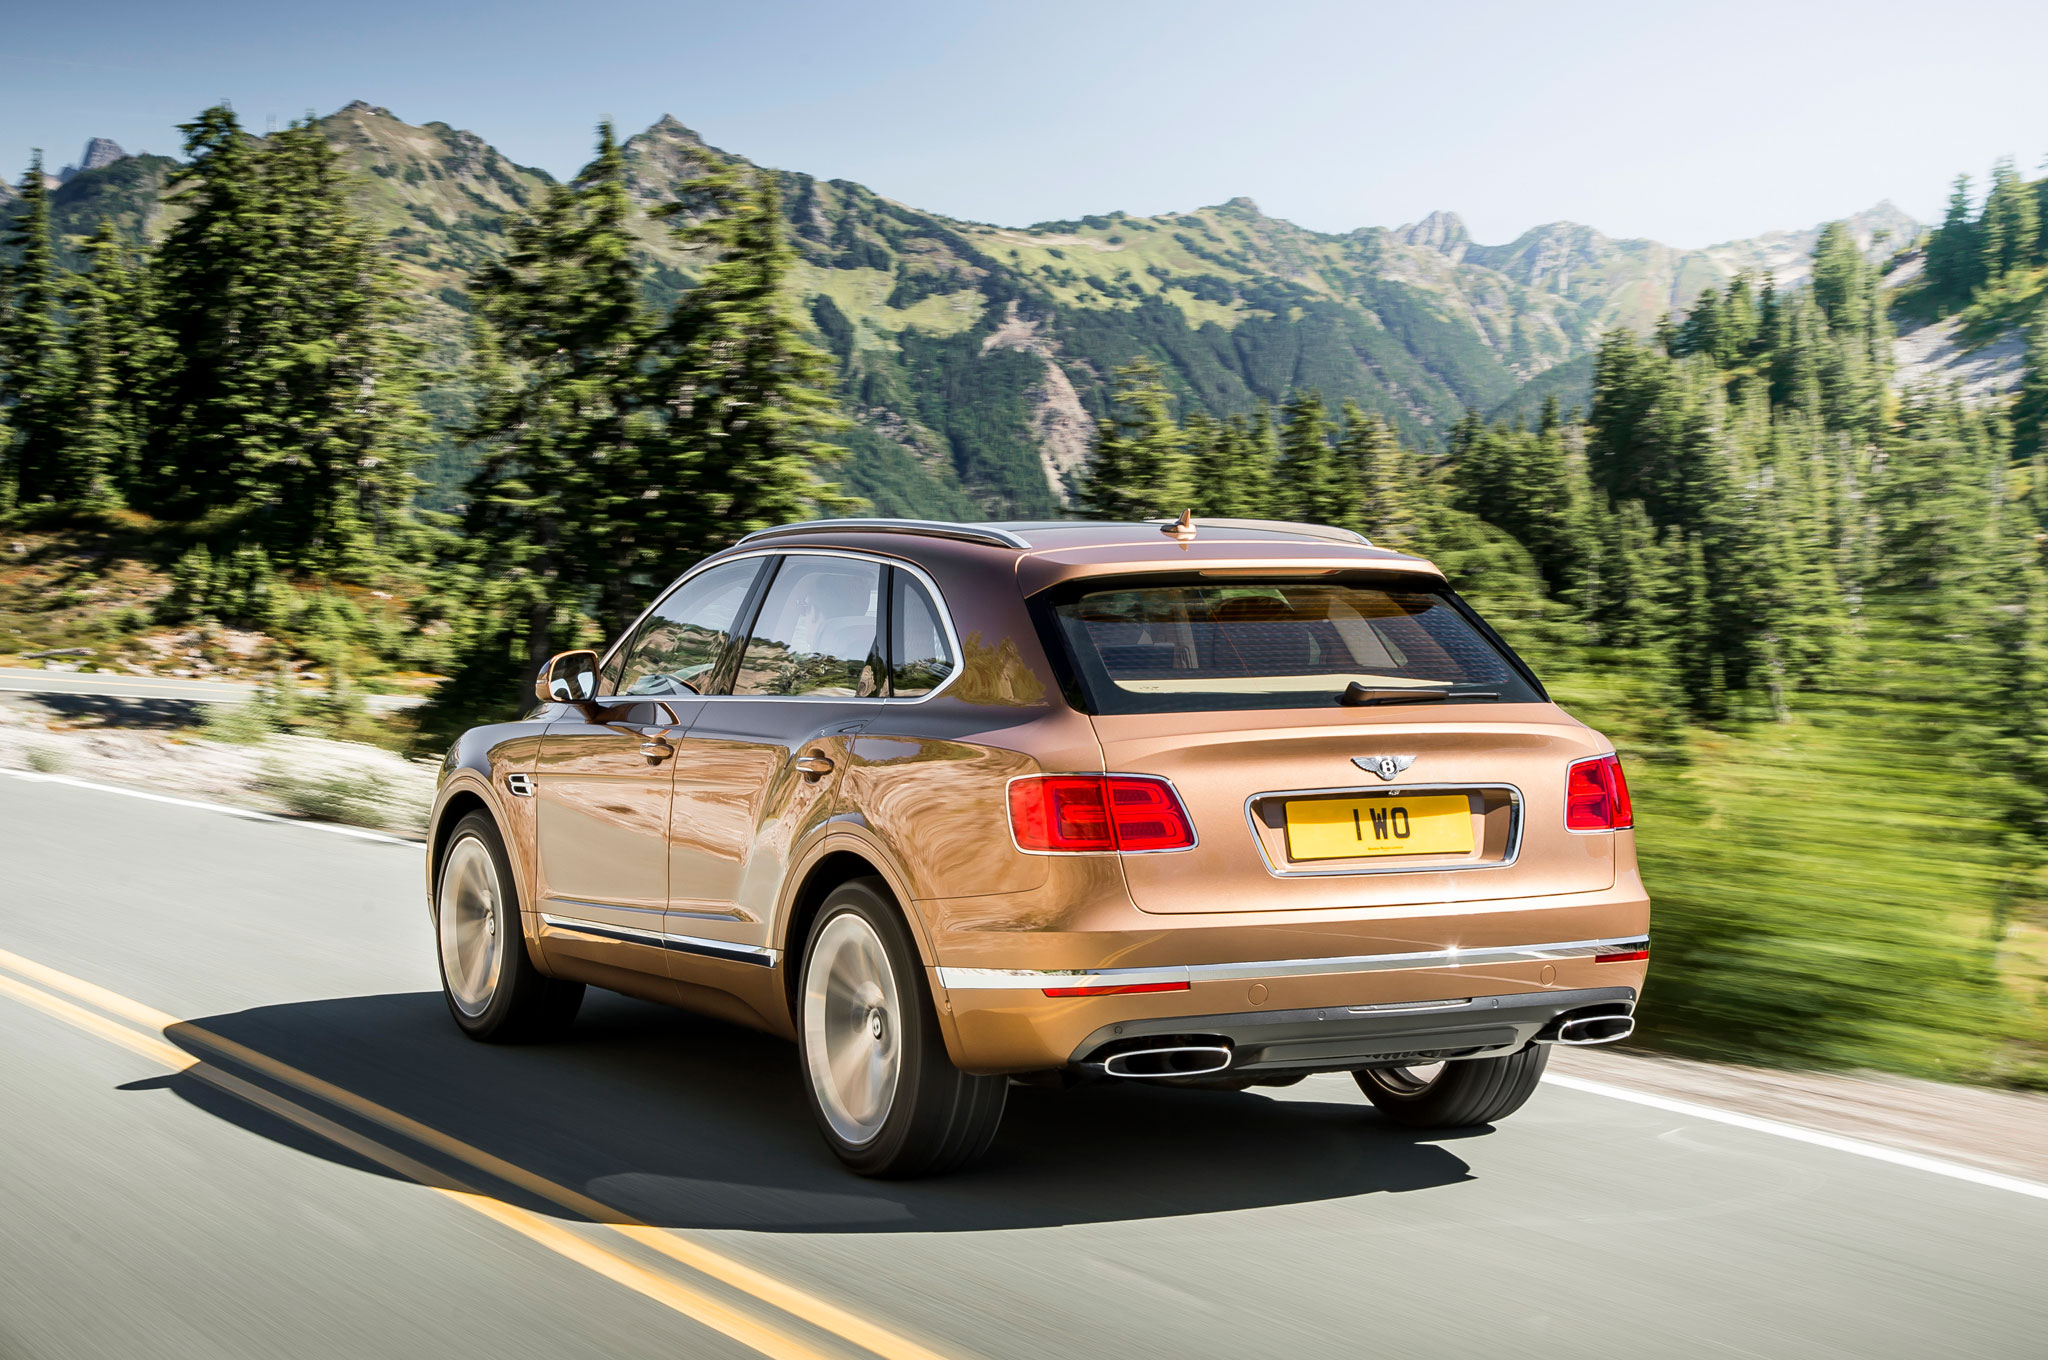 2017 Bentley Bentayga Rear Side View (Photo 12 of 16)